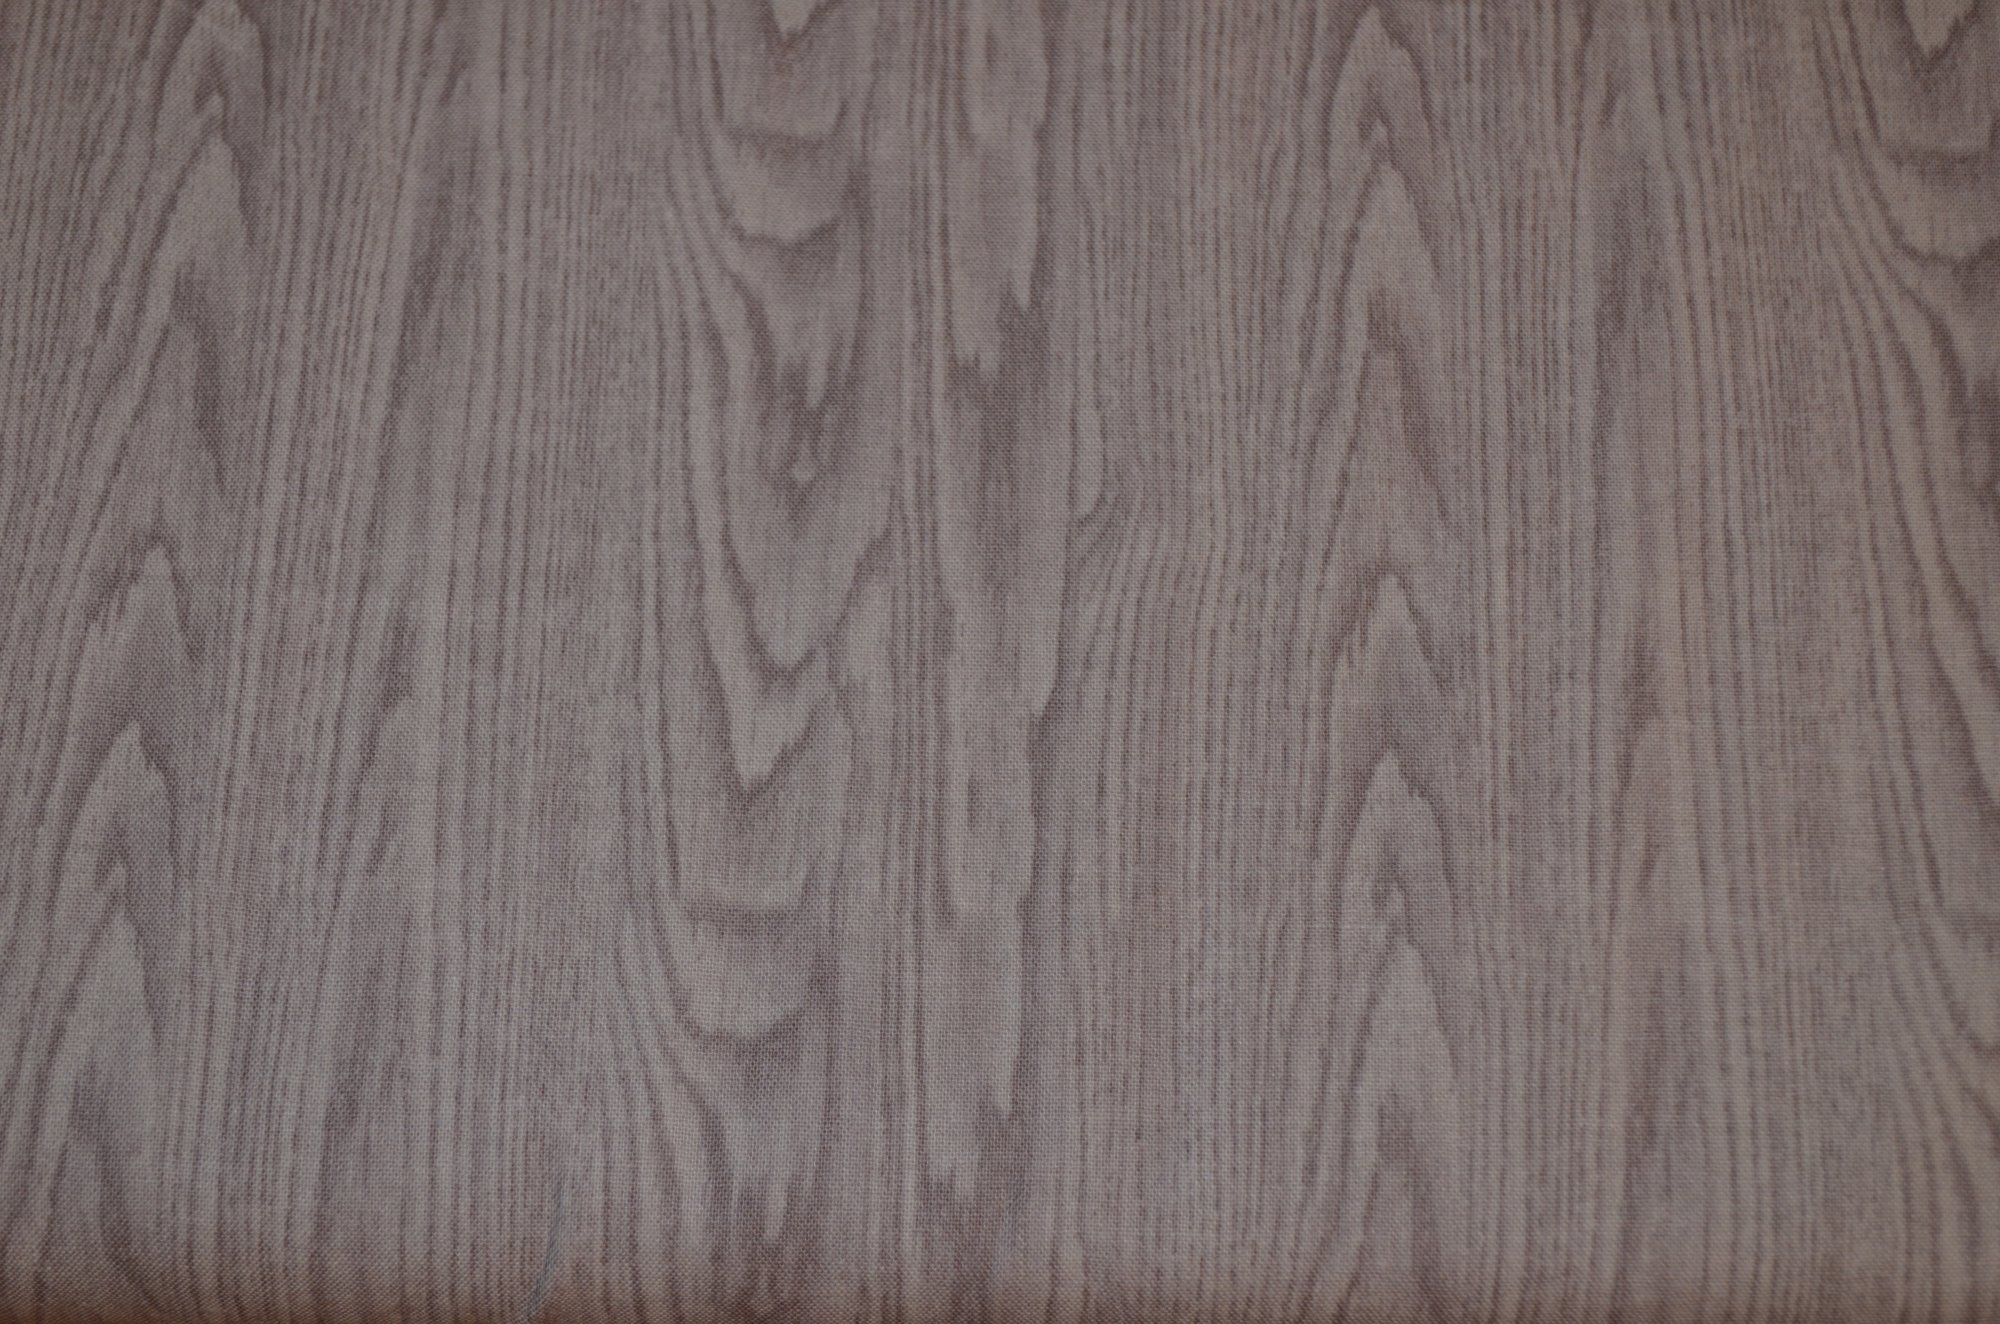 FISHING WOOD GRAIN GRAY